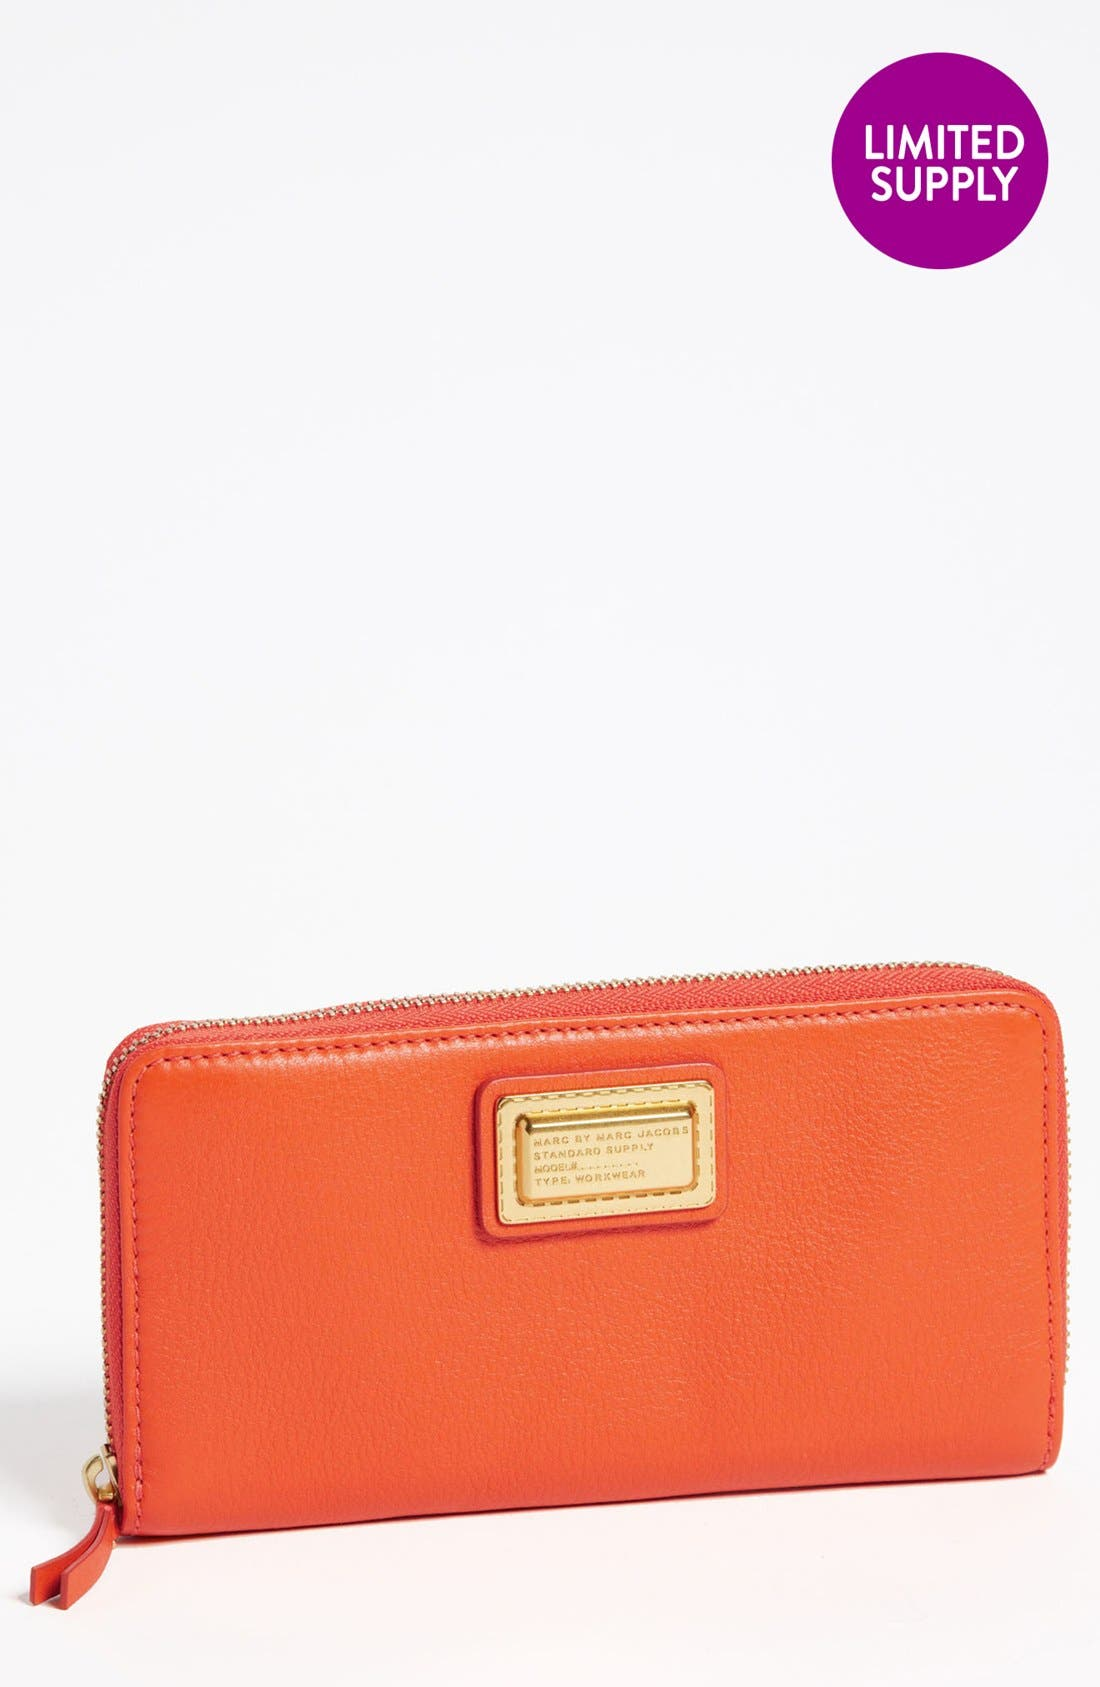 Main Image - MARC BY MARC JACOBS 'Vertical Zippy' Leather Wallet